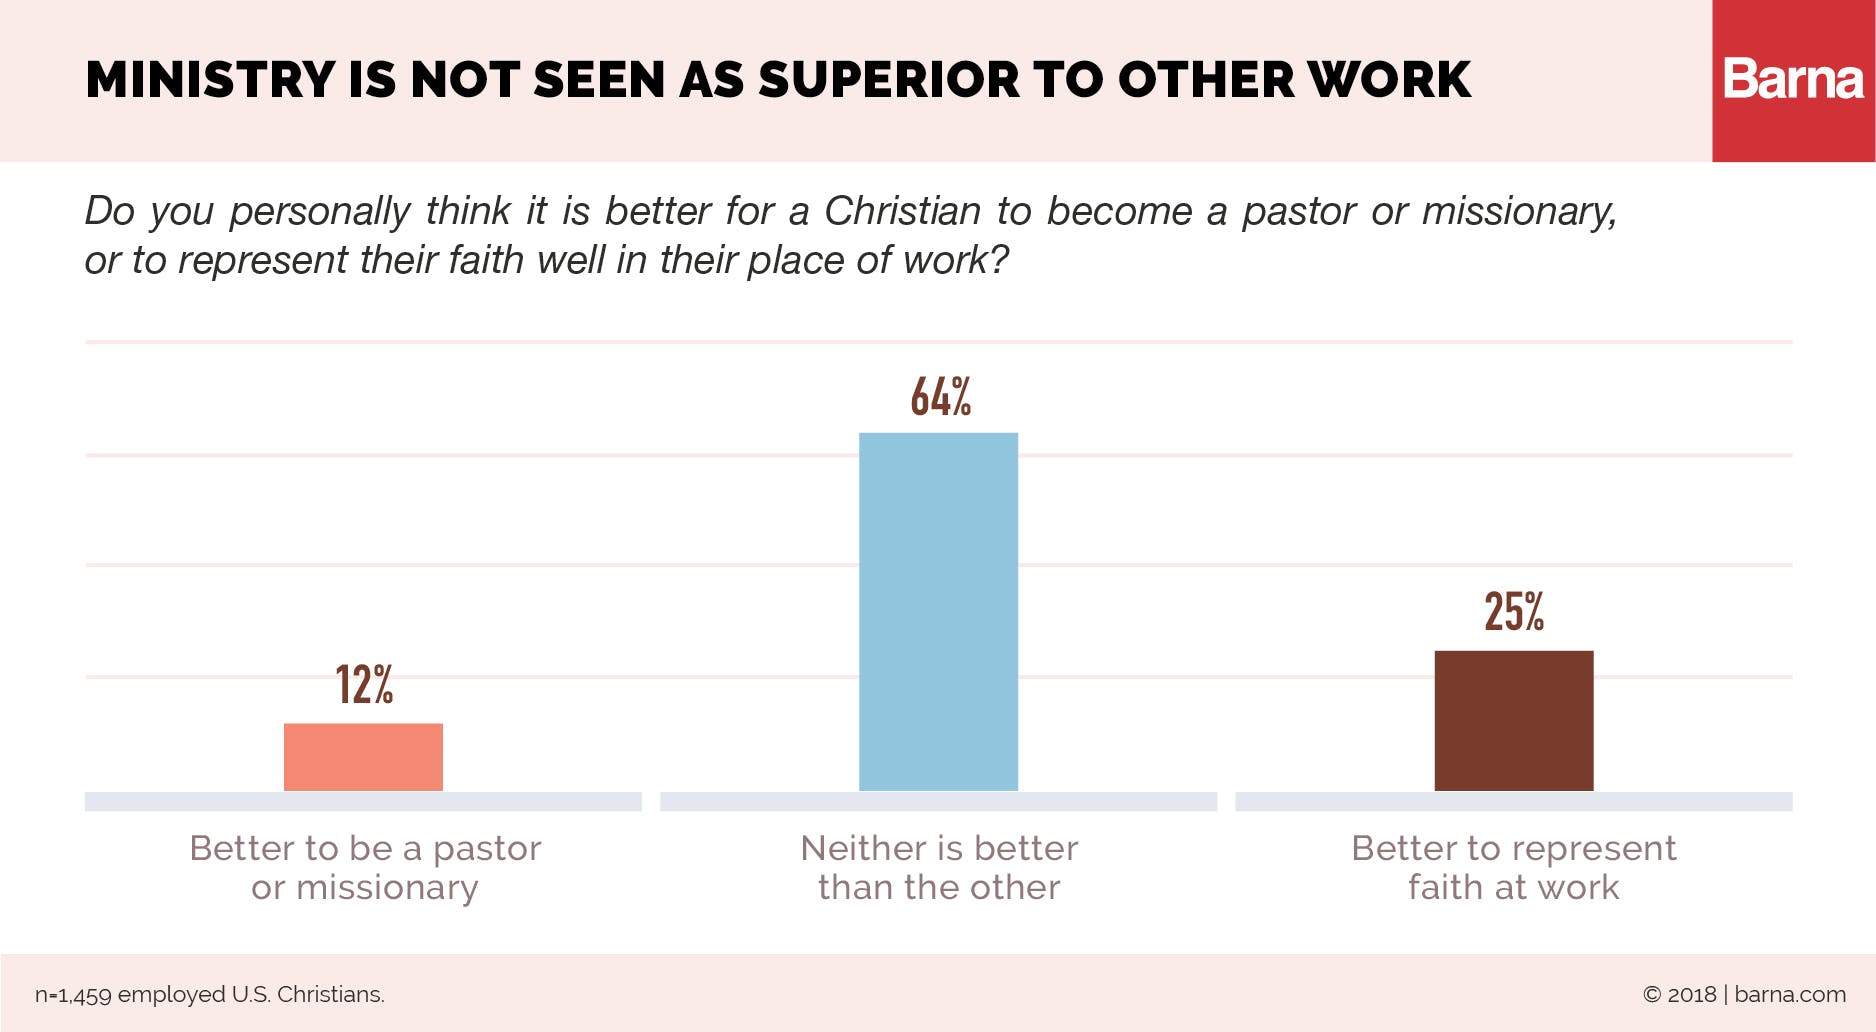 Ministry is not seen as superior to other work